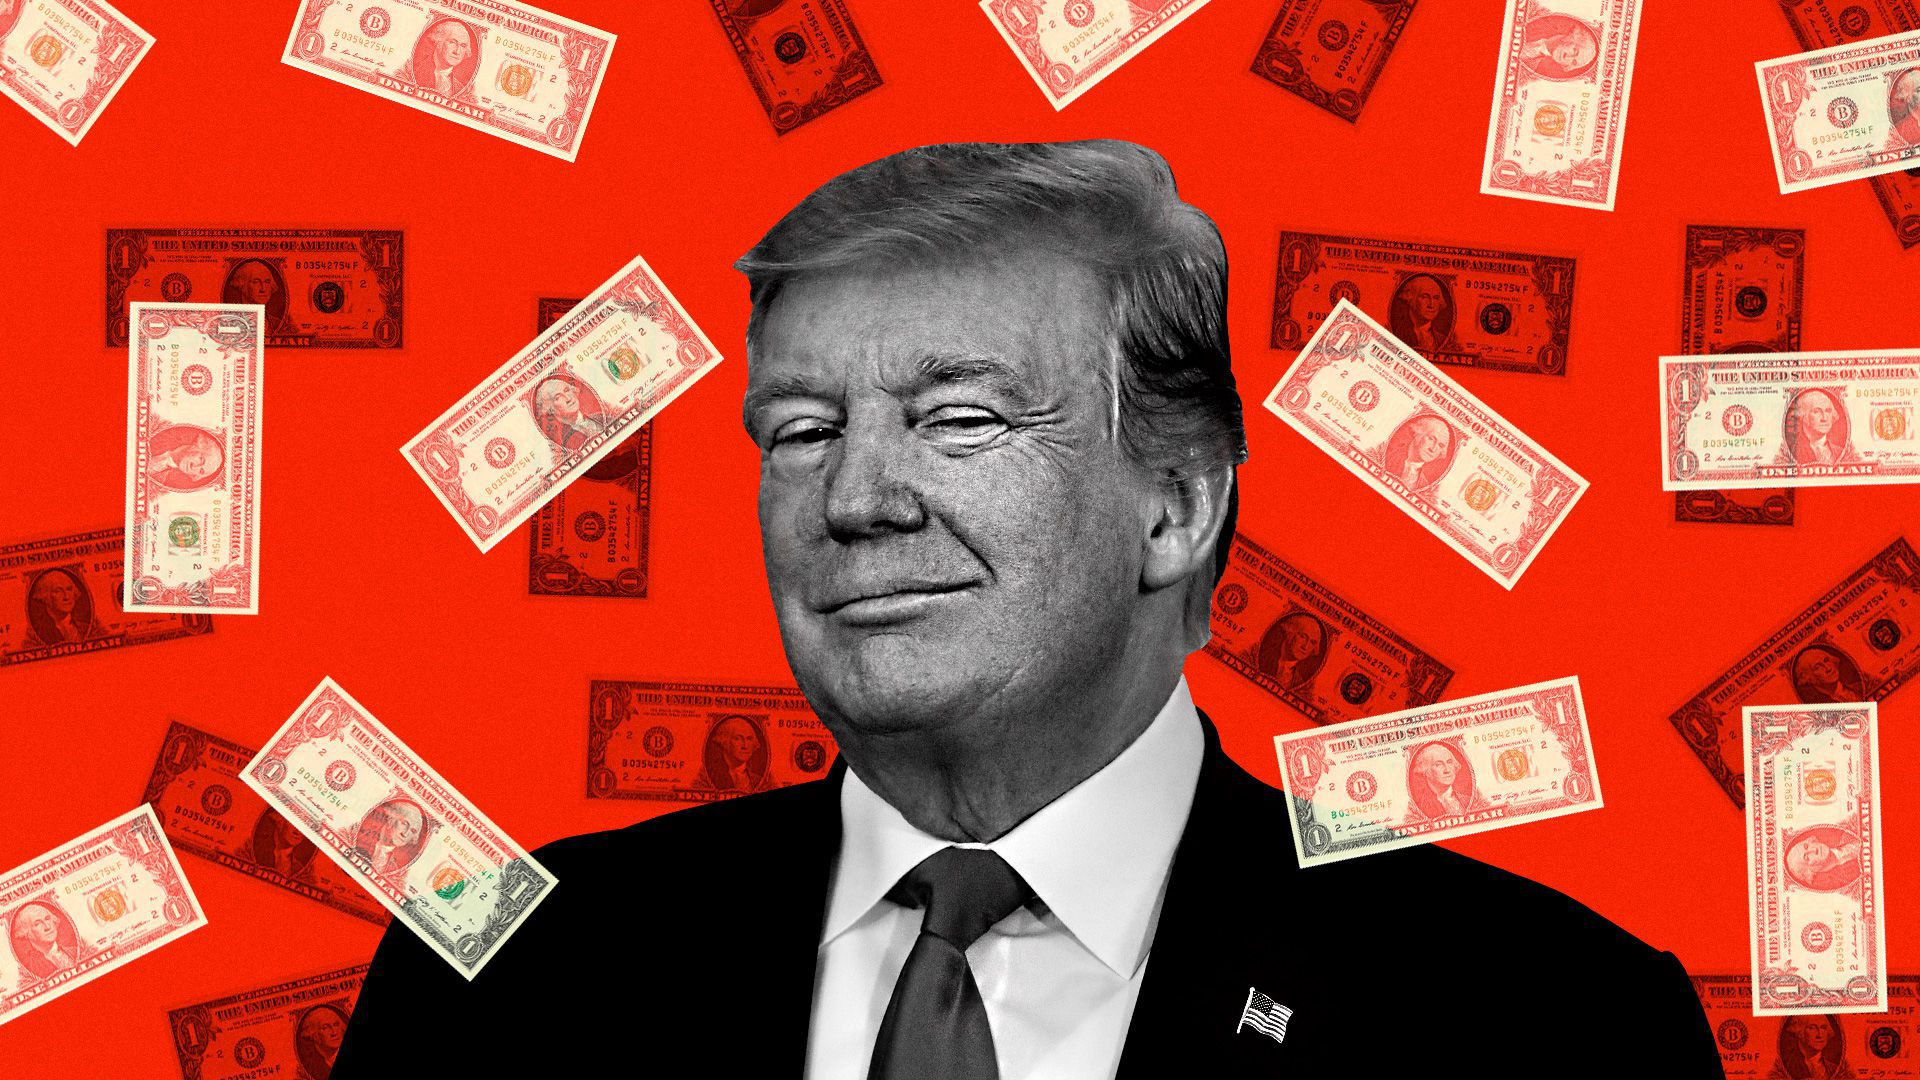 Trump surrounded by money